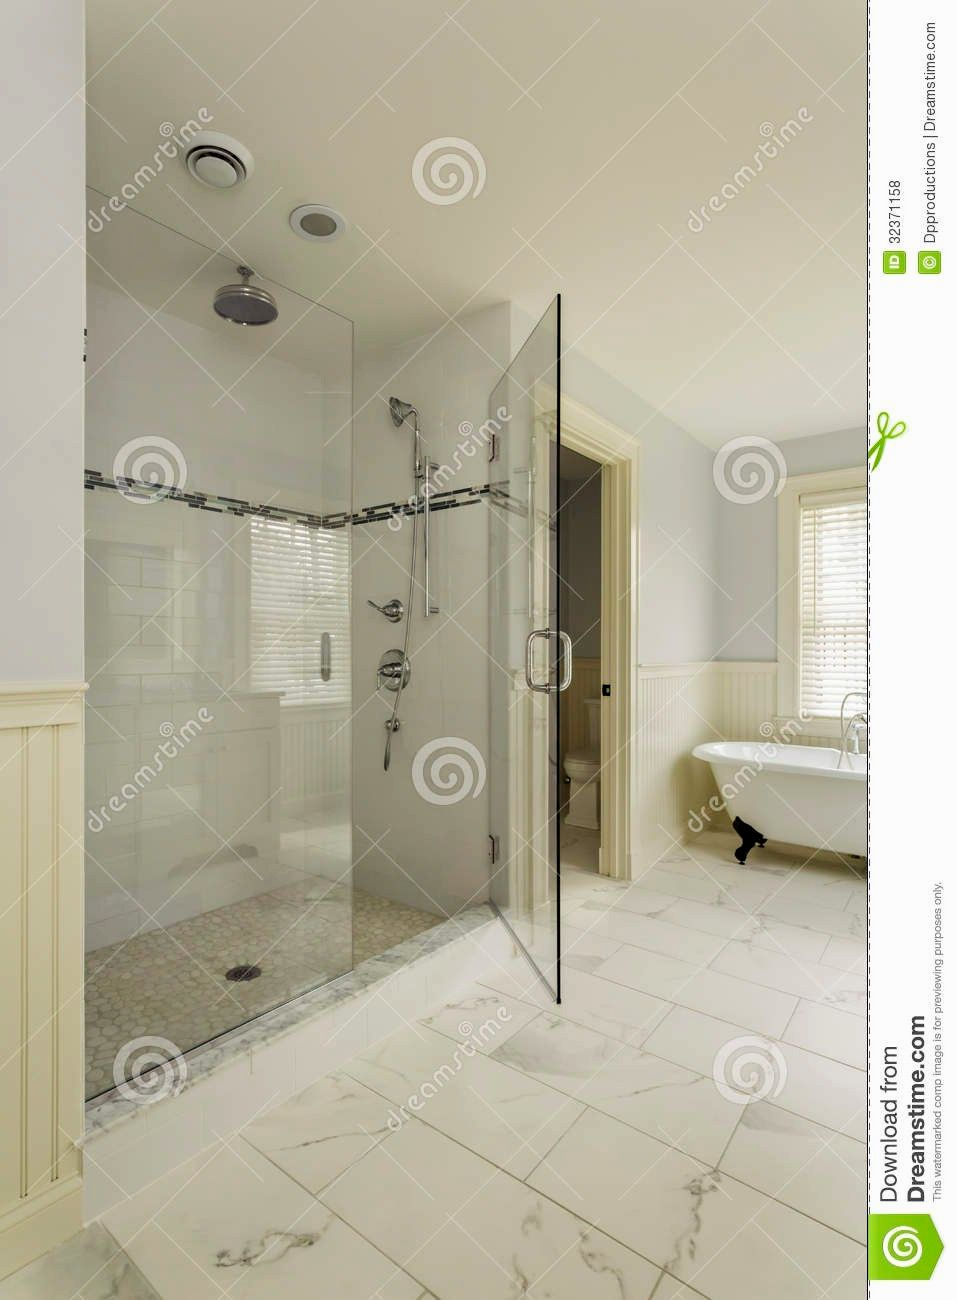 sensational bathroom ideas on a budget concept-Sensational Bathroom Ideas On A Budget Layout